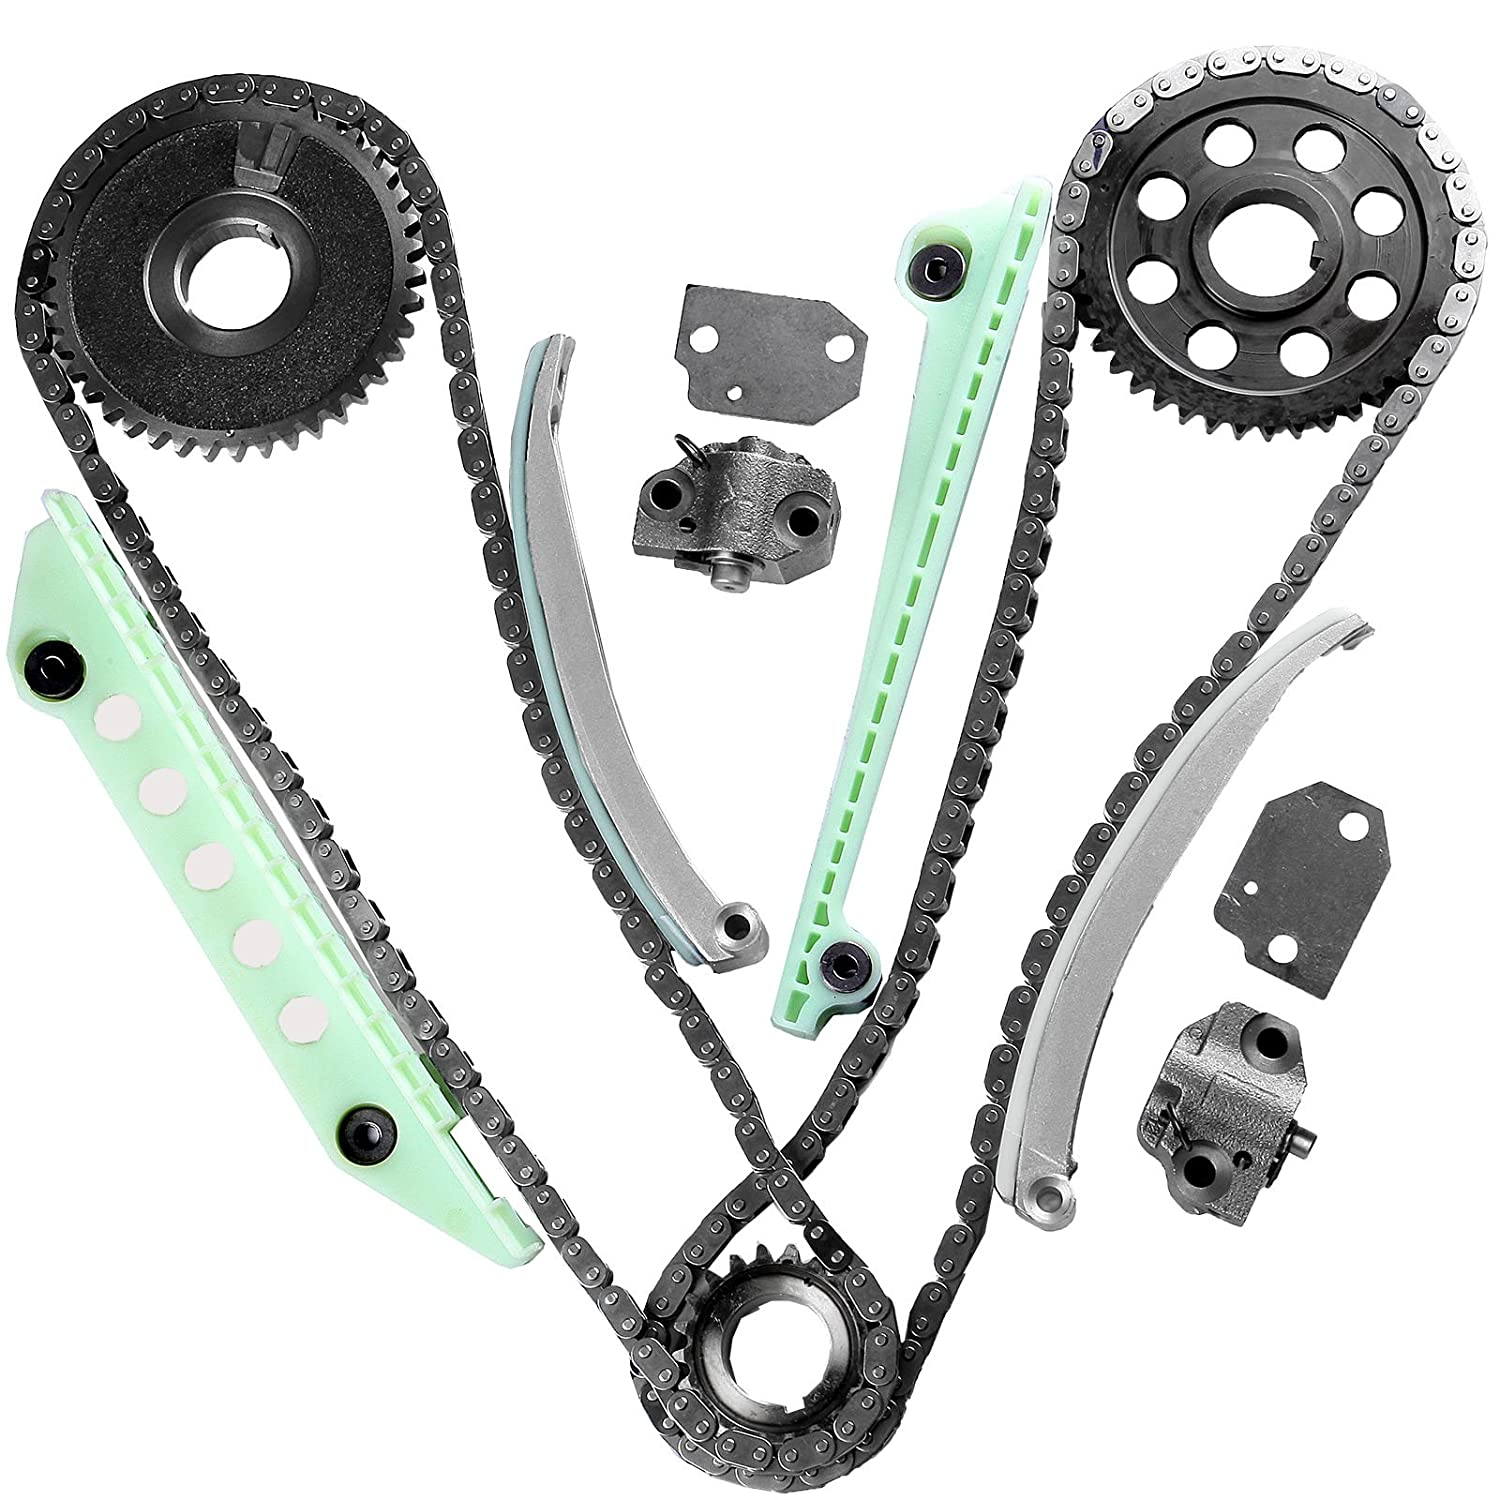 Eccpp Tk6046w Timing Chain Kit For 97 07 Ford E150 F150 2004 Explorer 4 0 F250 Expediton 46 281cid Windsor Kitcheck Fitment Automotive